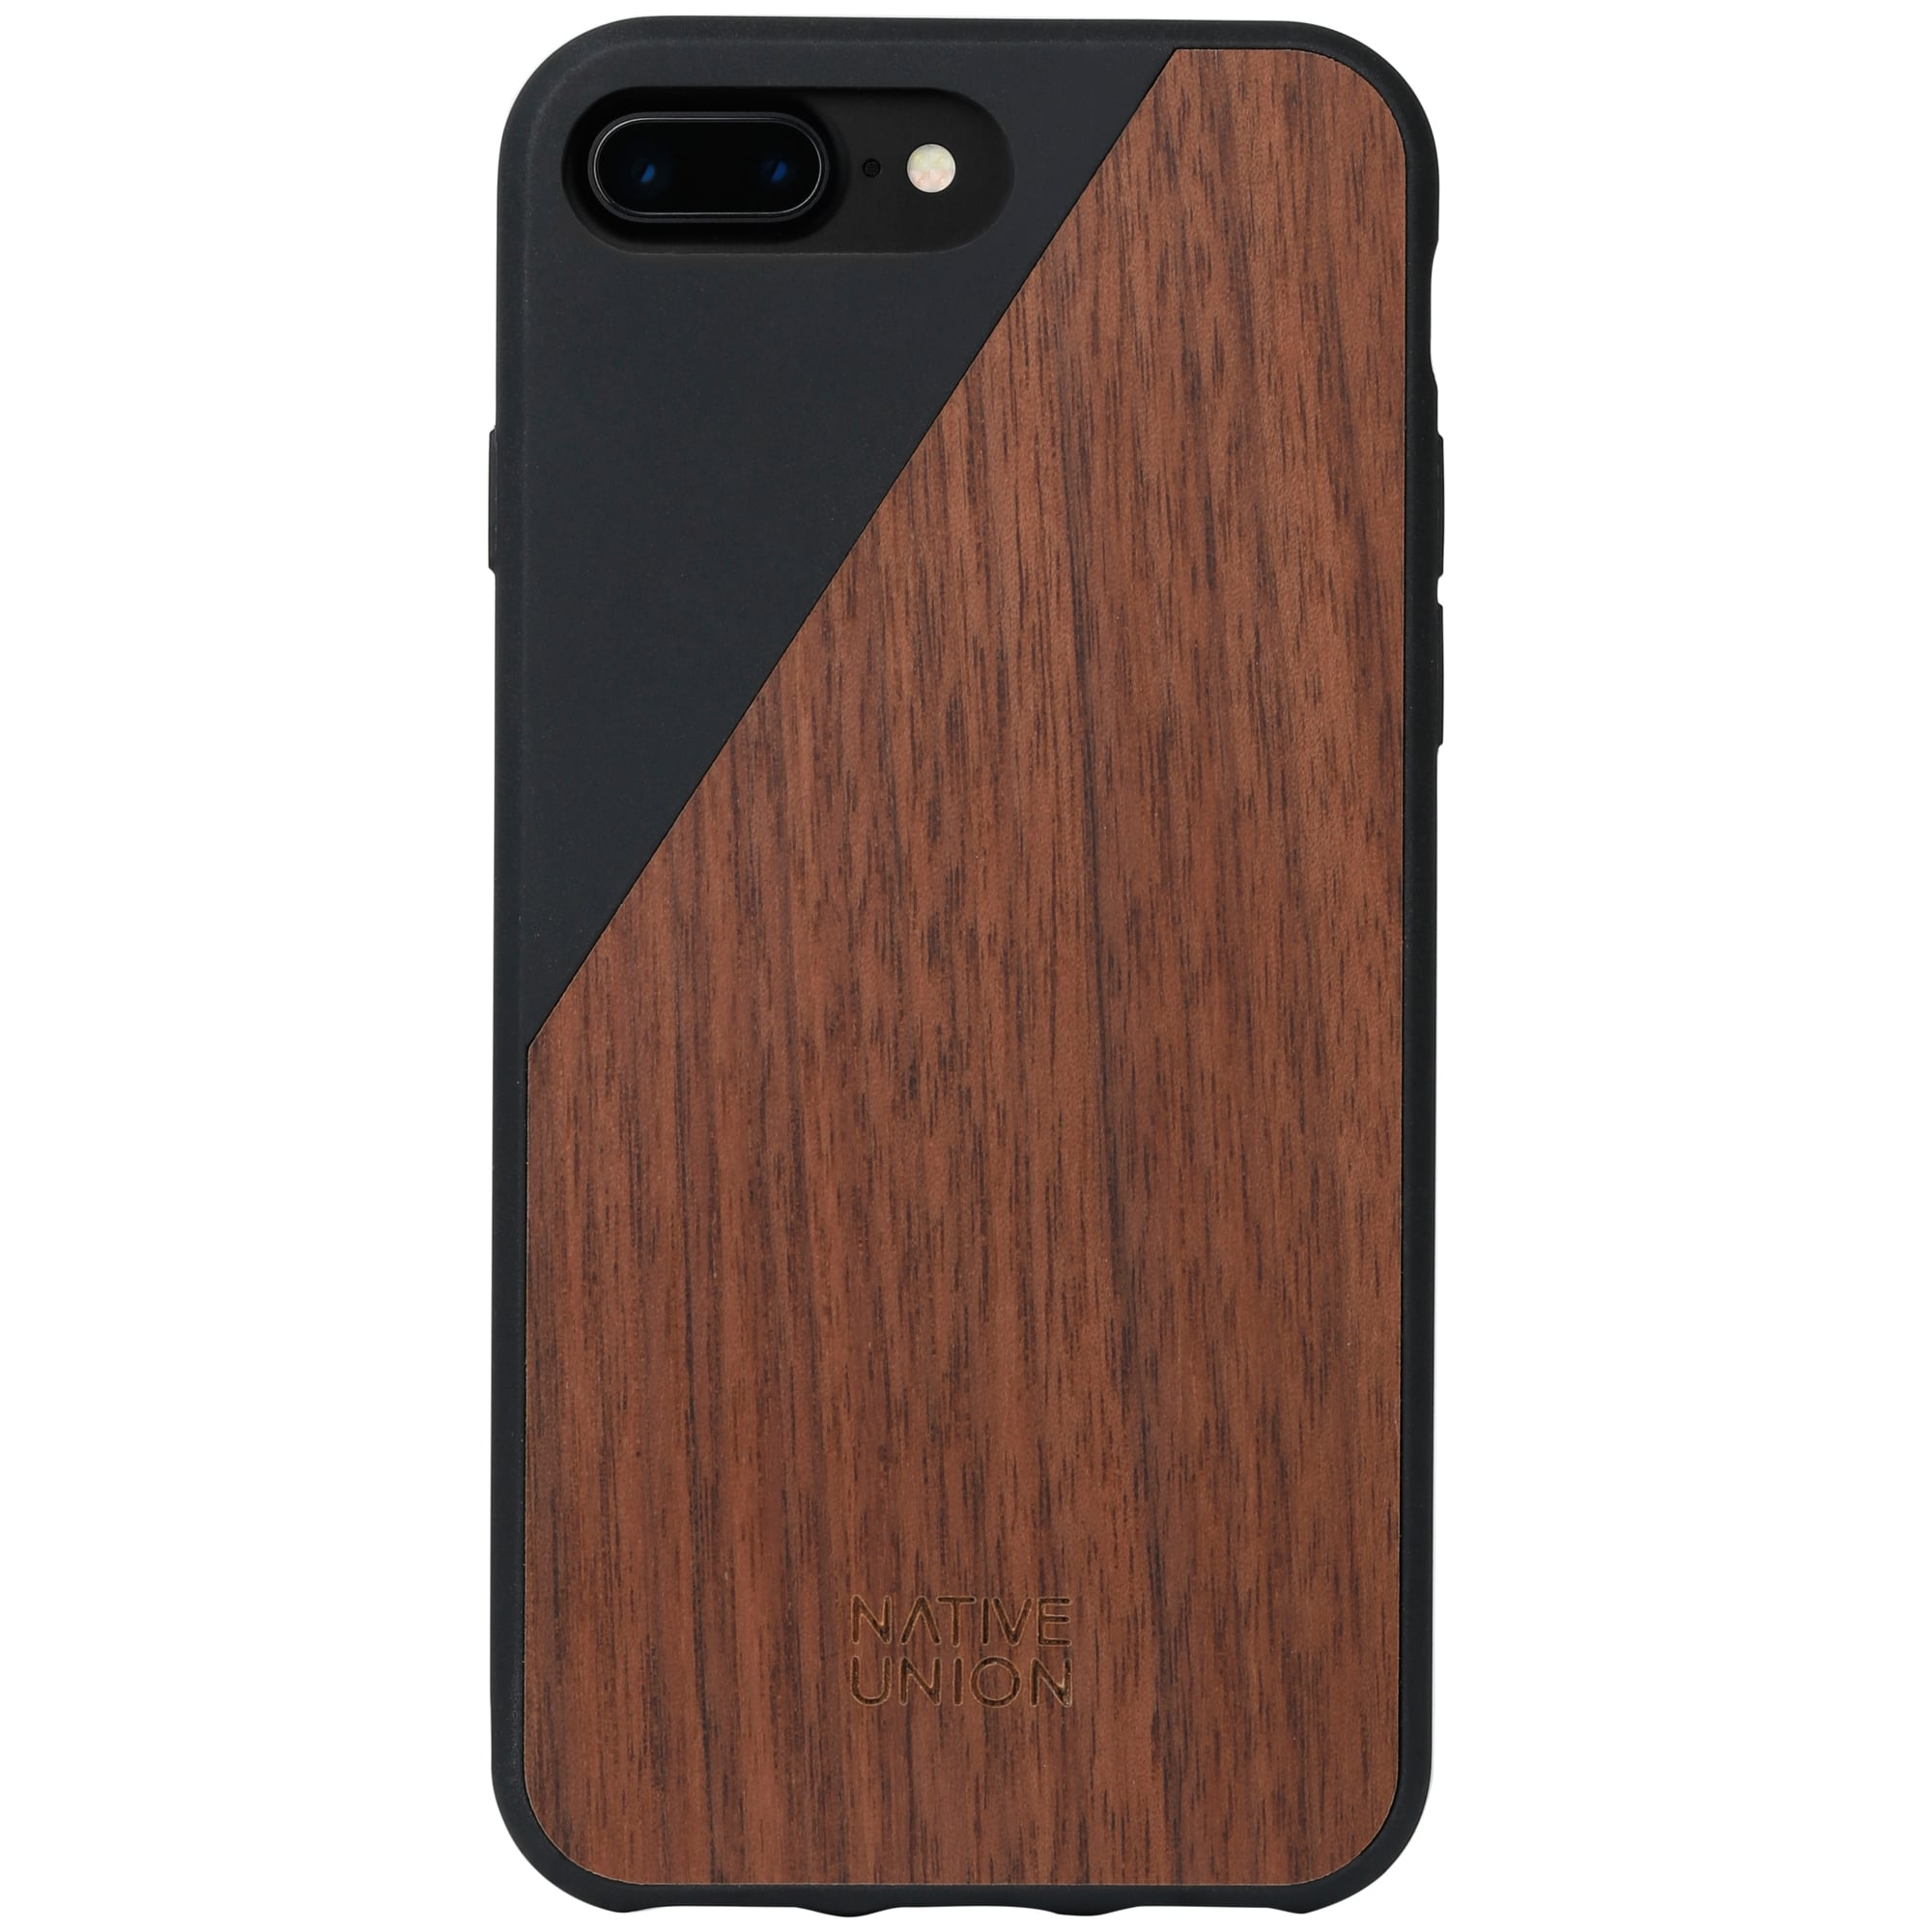 new style 013ba 20ab5 Native Union Native Union CLIC Wooden for iPhone 7 & 8 Plus